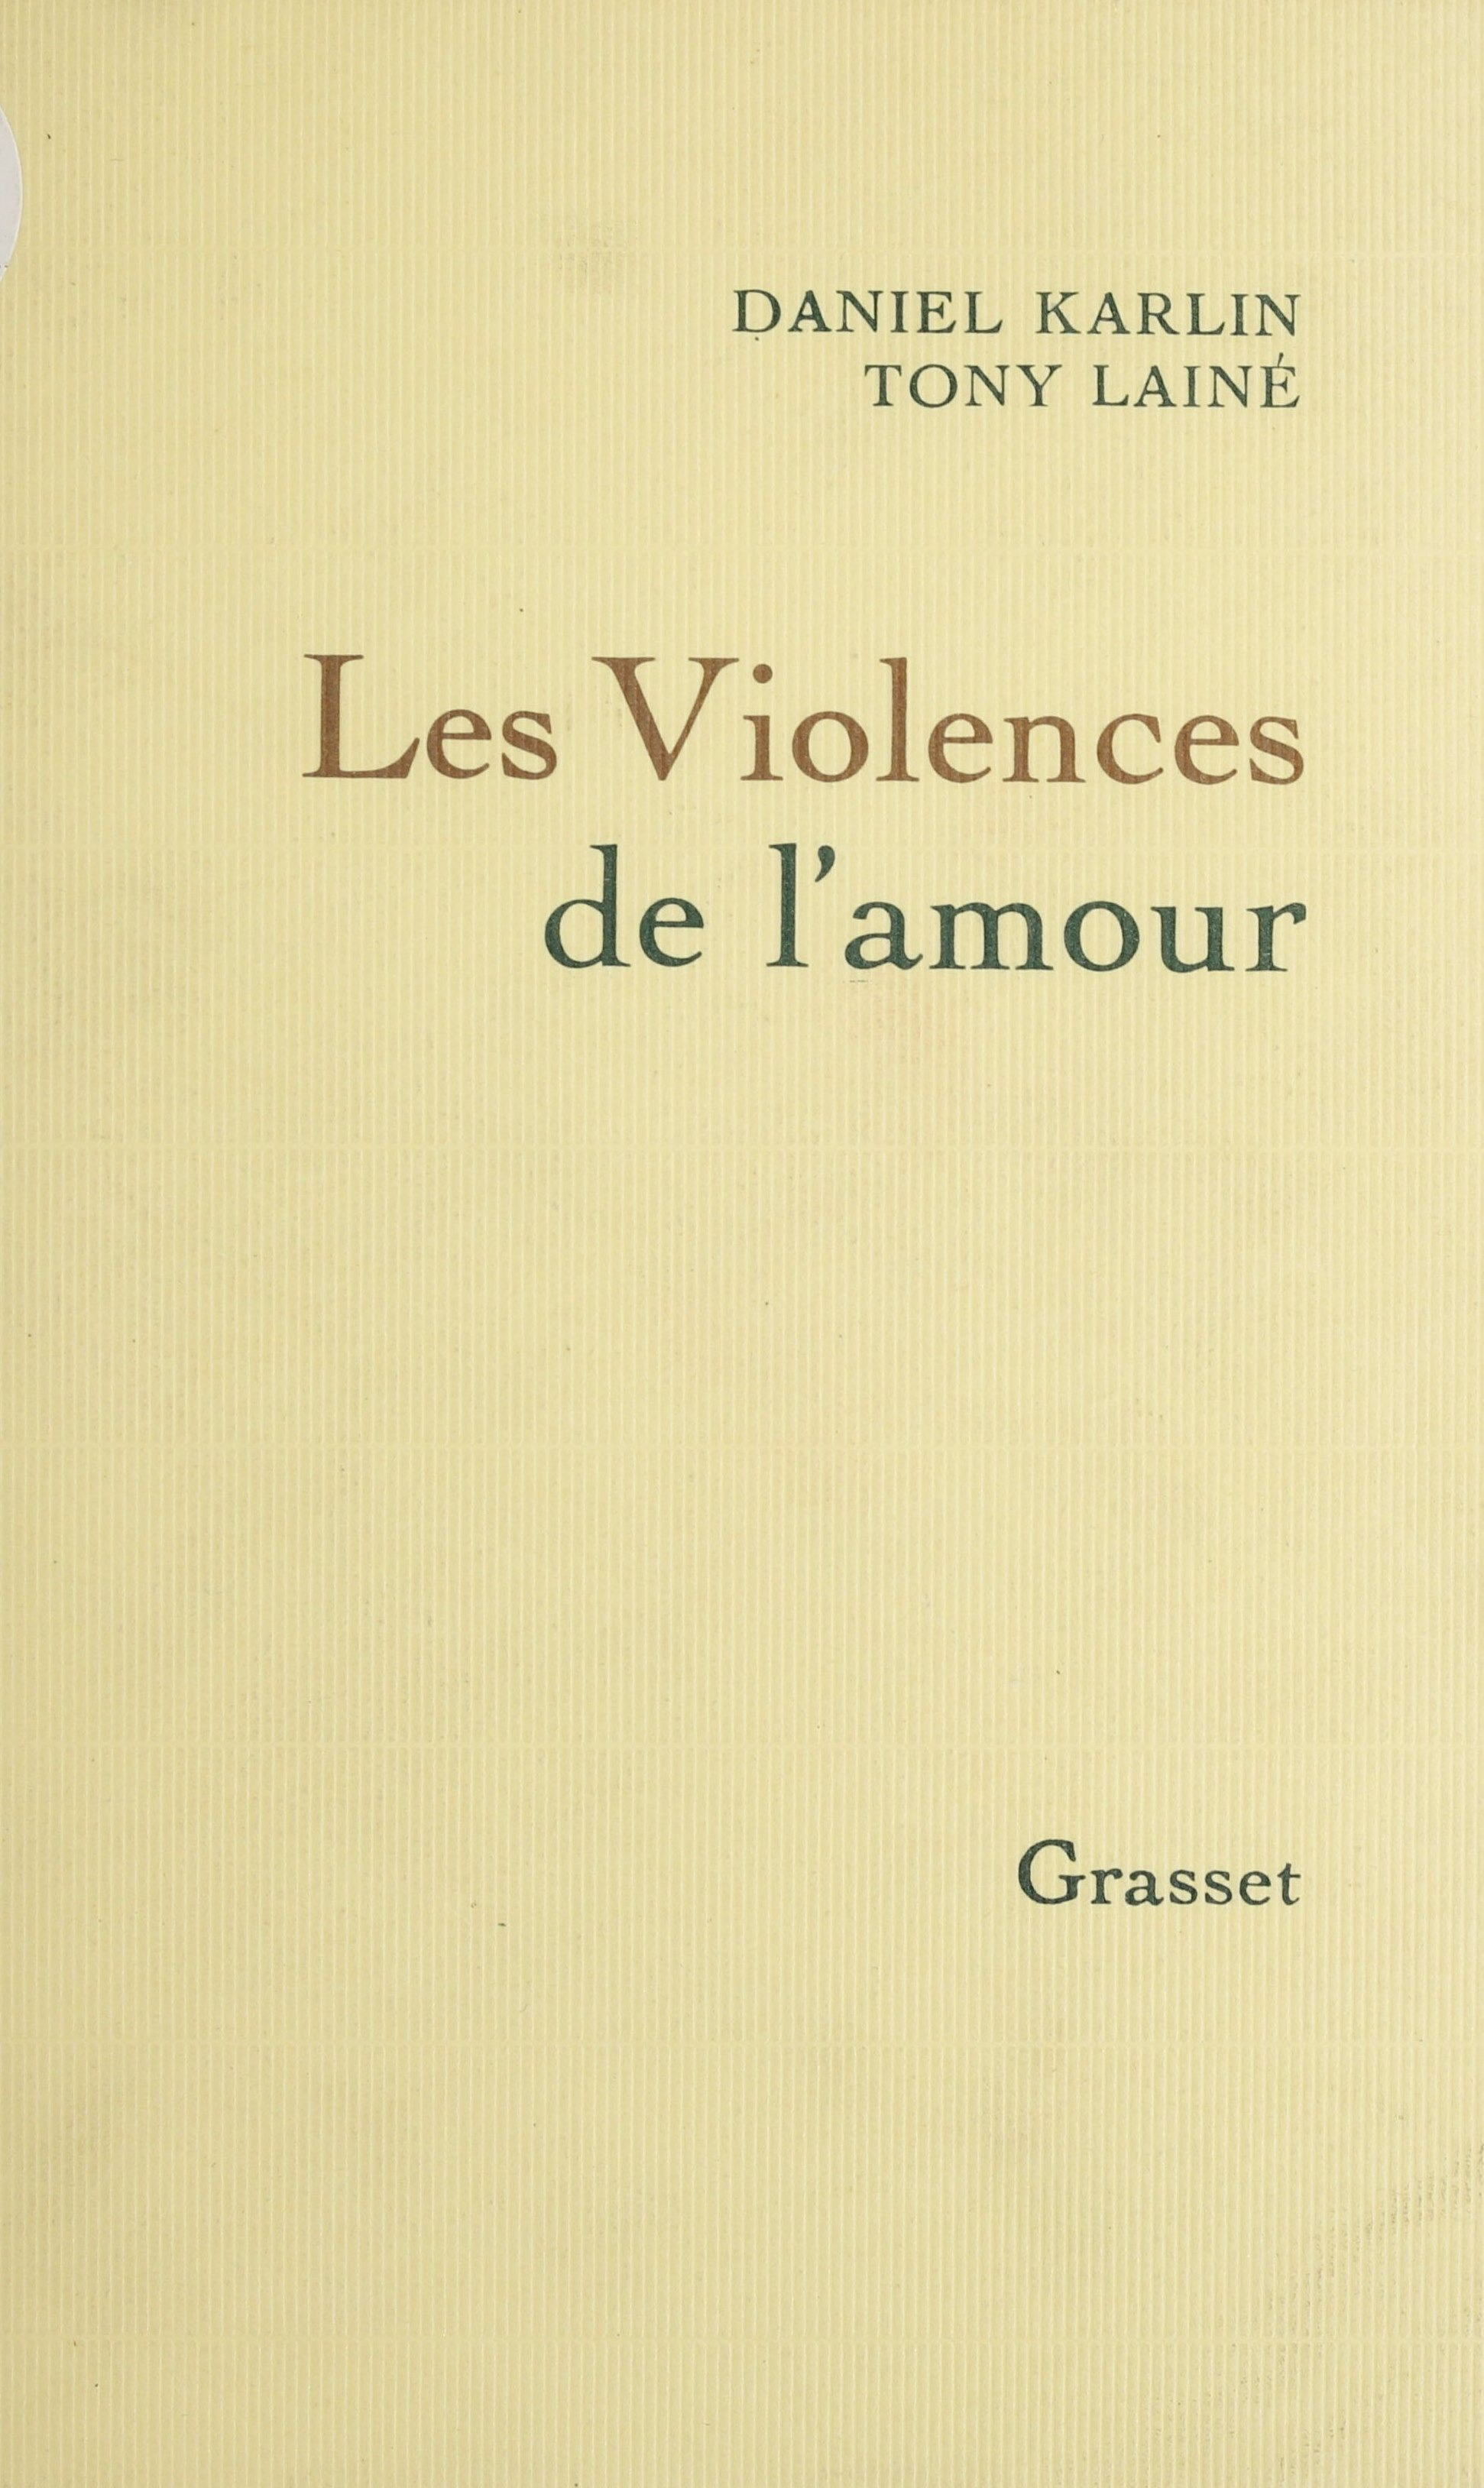 Les Violences de l'amour